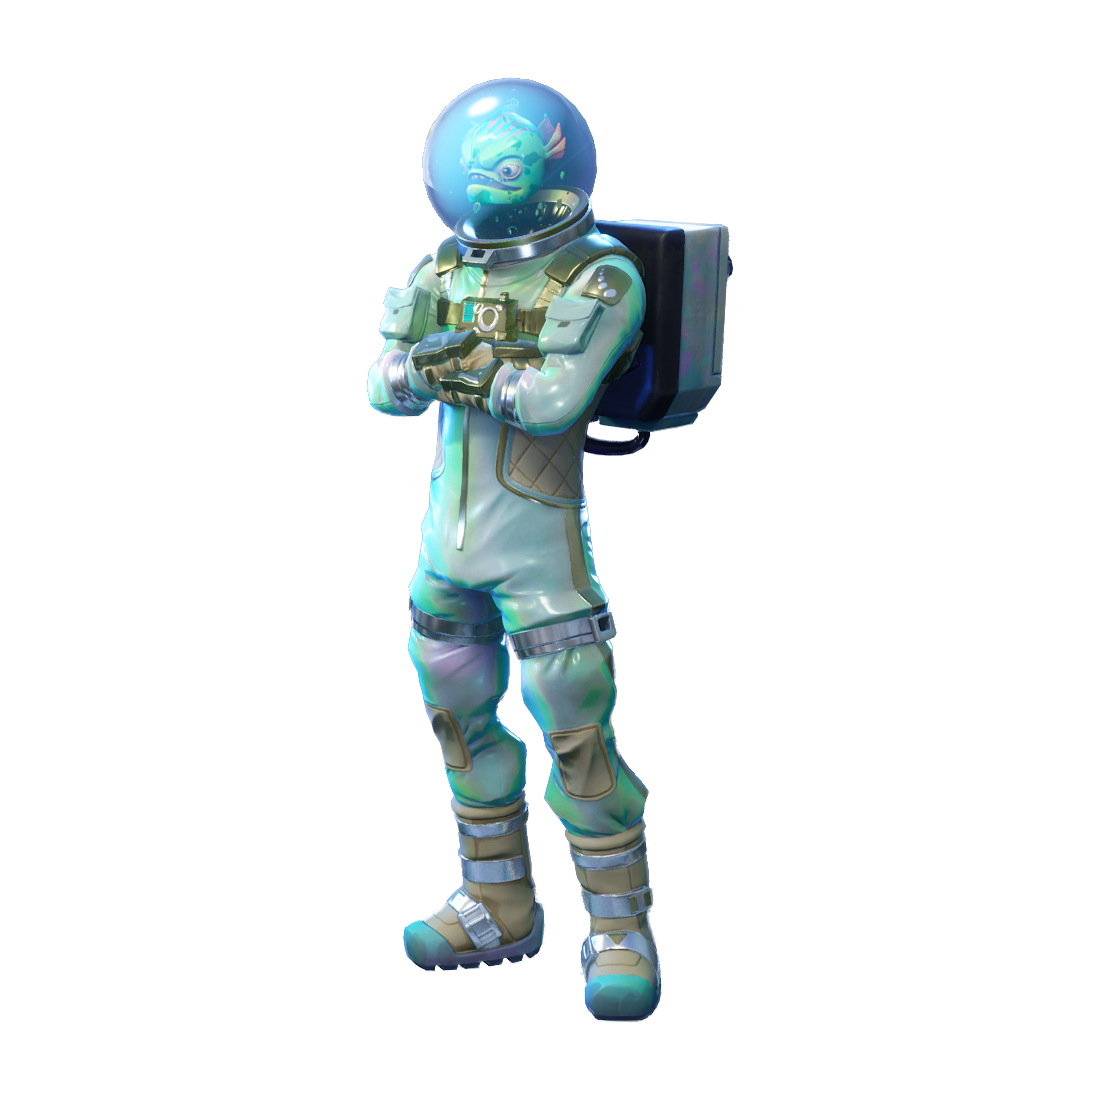 Fortnite clipart transparent background. Hd leviathan png free